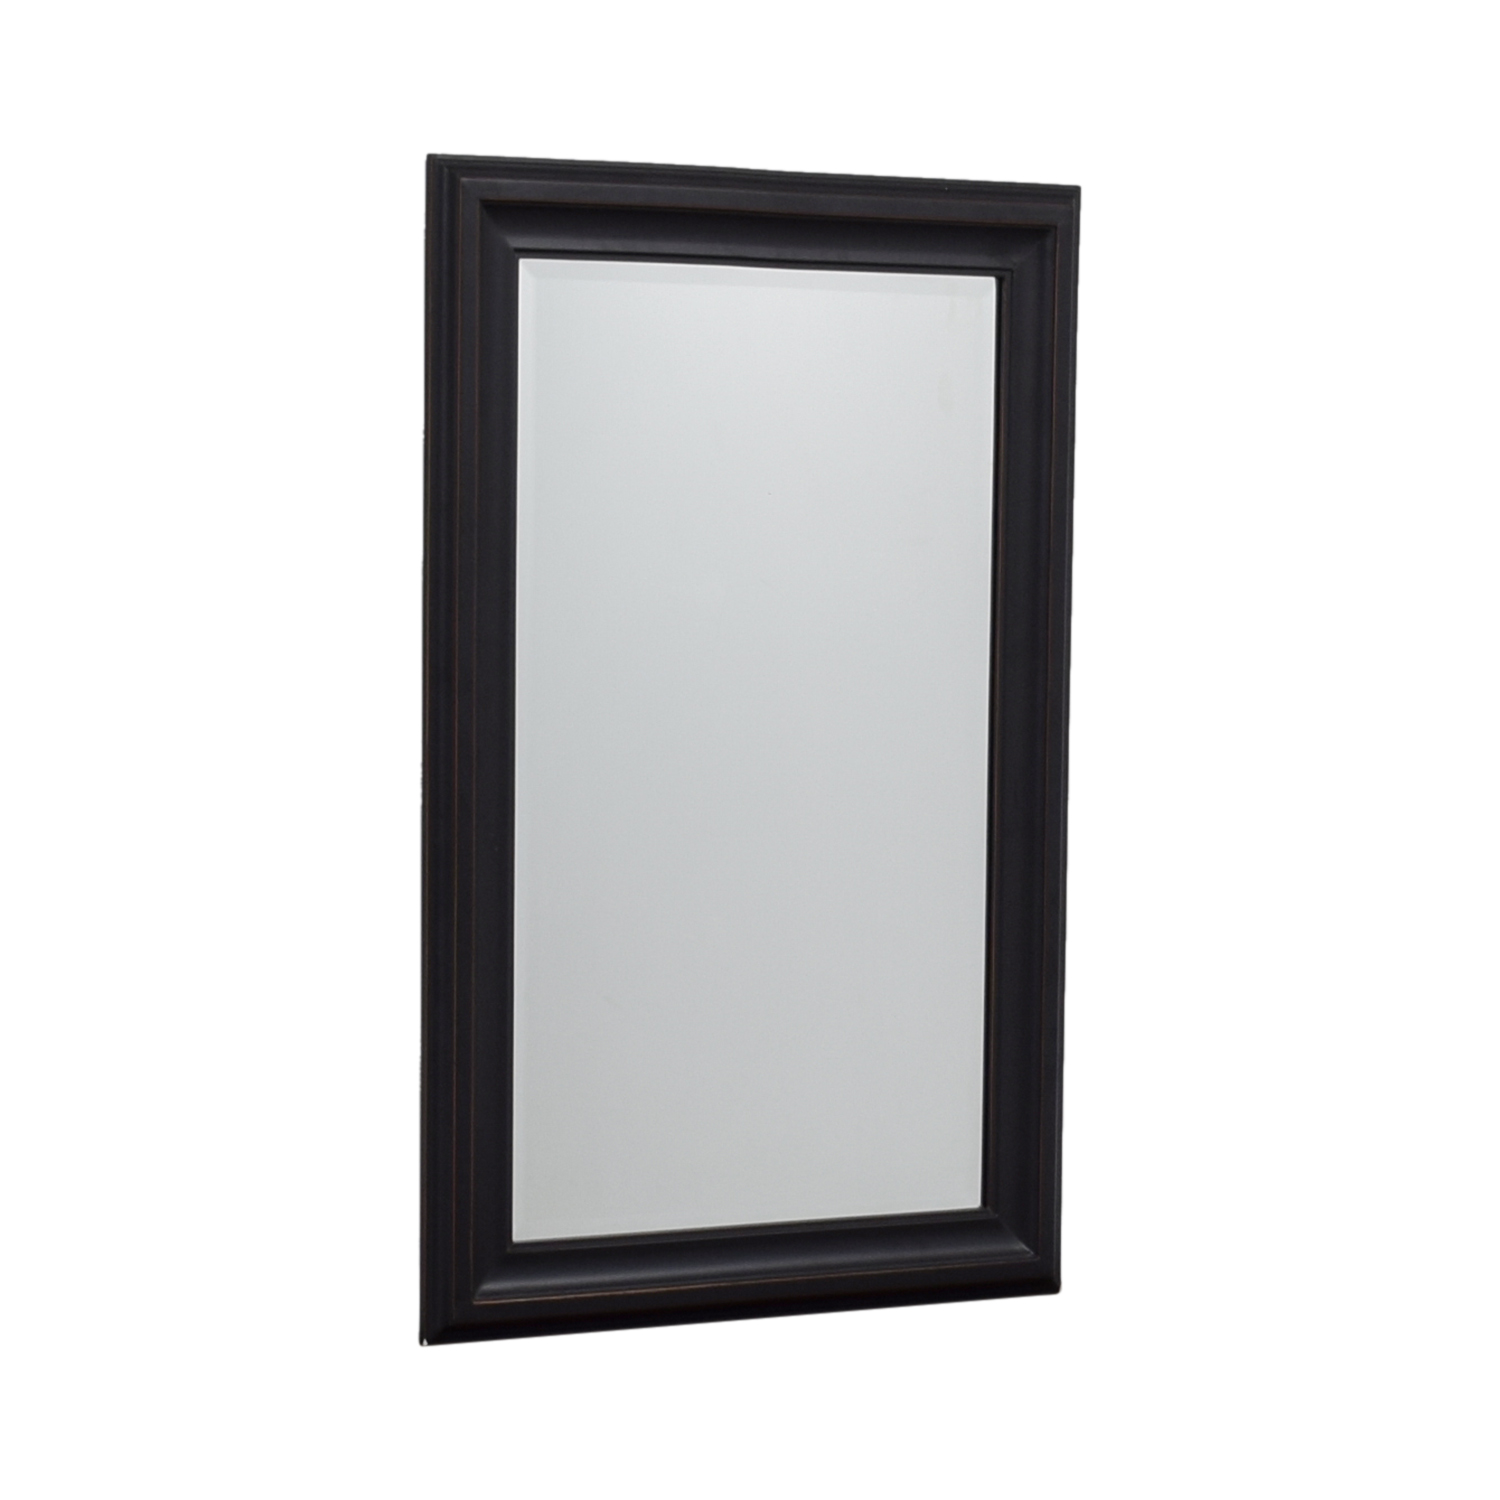 Howard Elliot Collection Howard Elliot Collection Black Framed Mirror Black